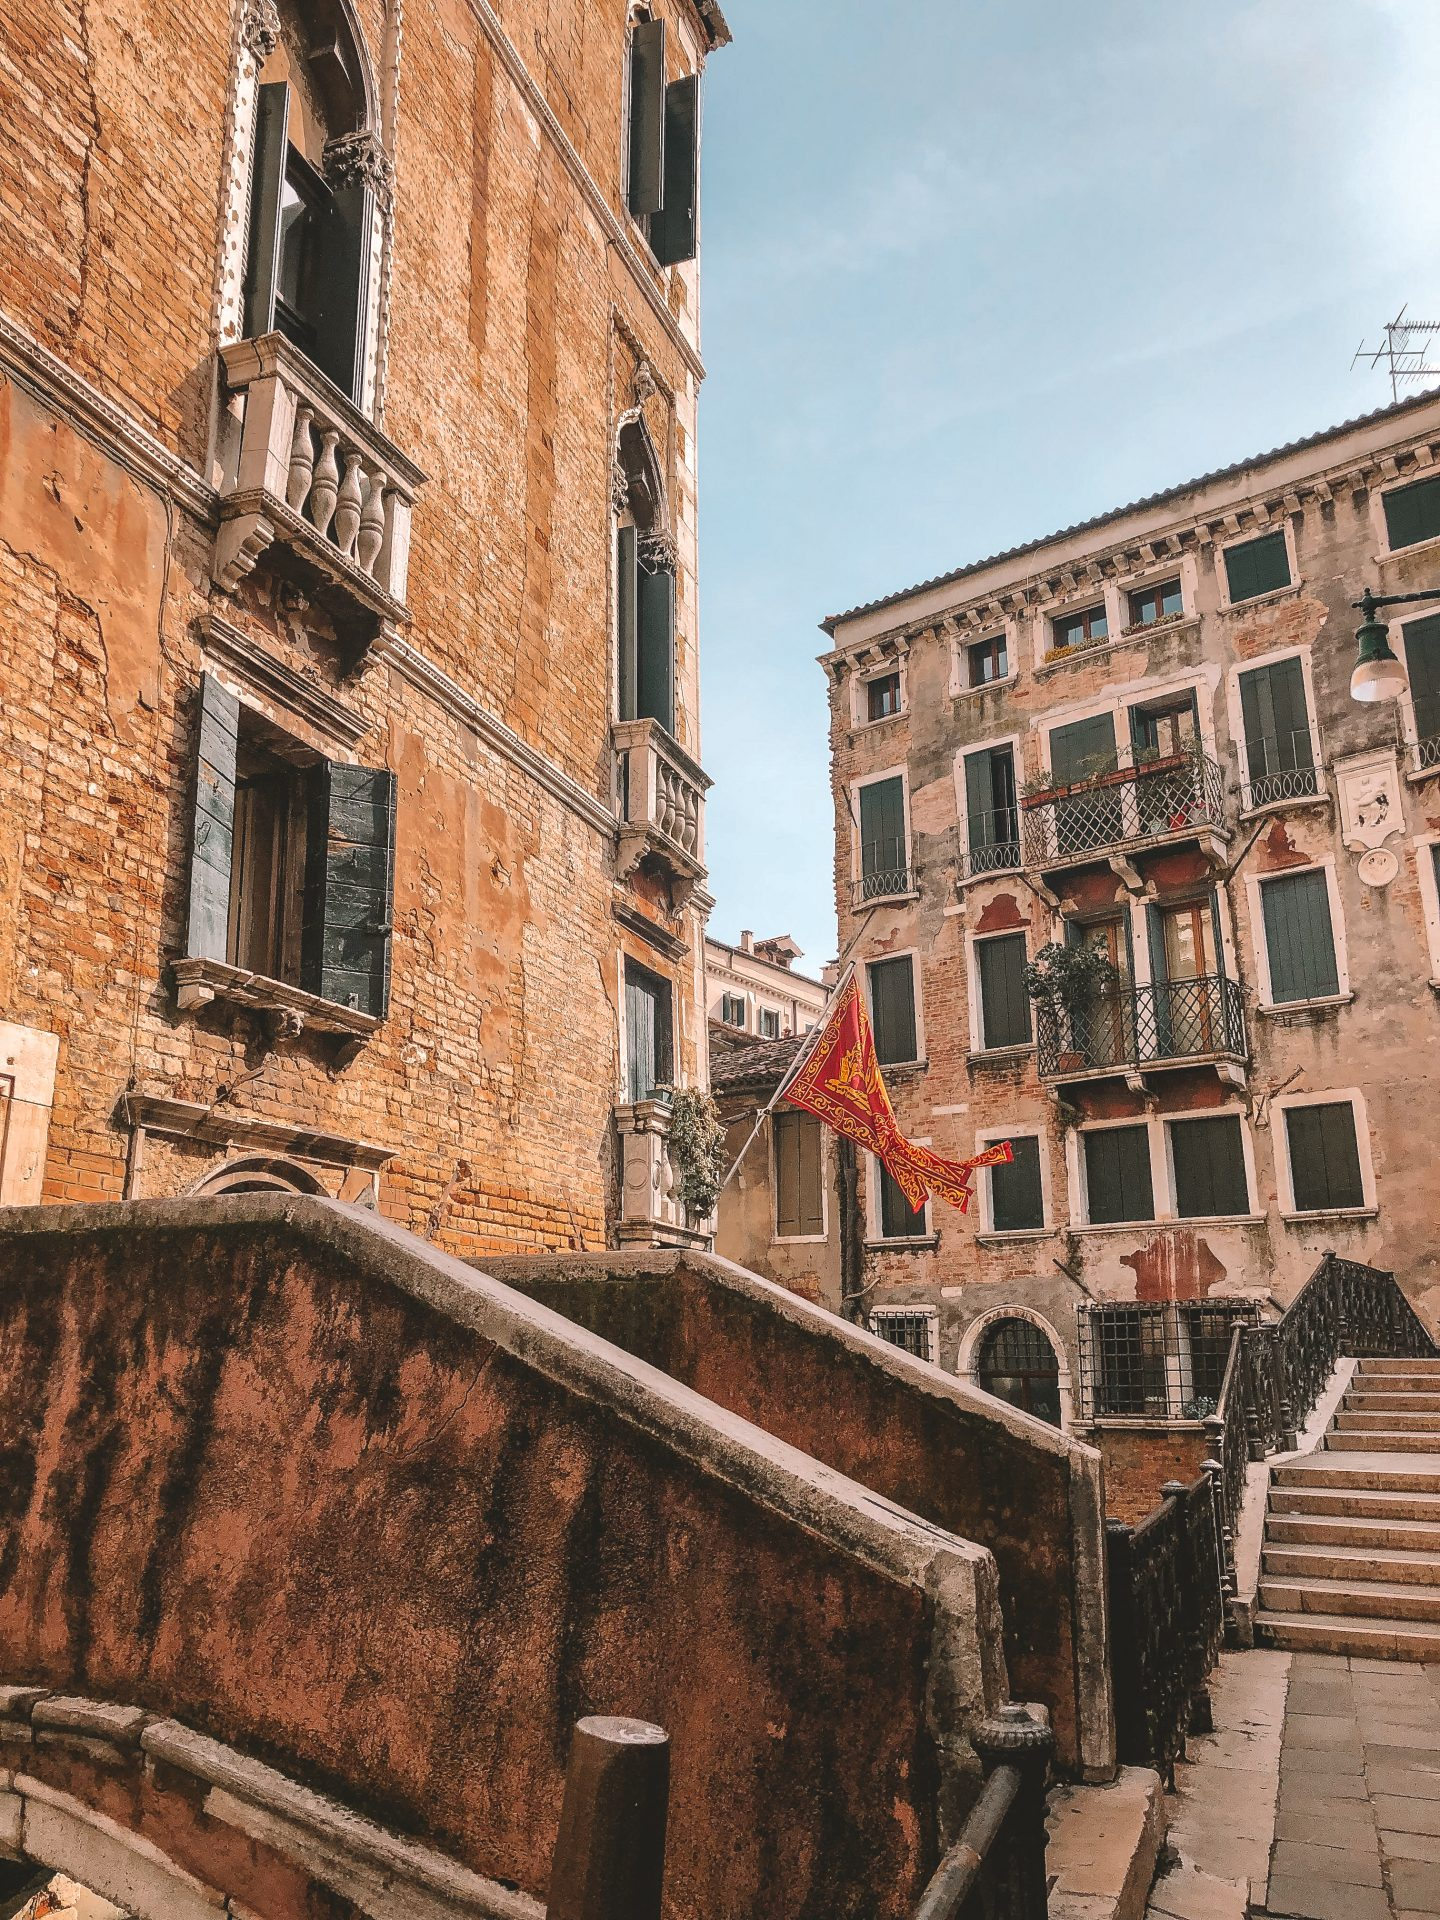 Large brick building with flag flapping out front in Venice, Italy